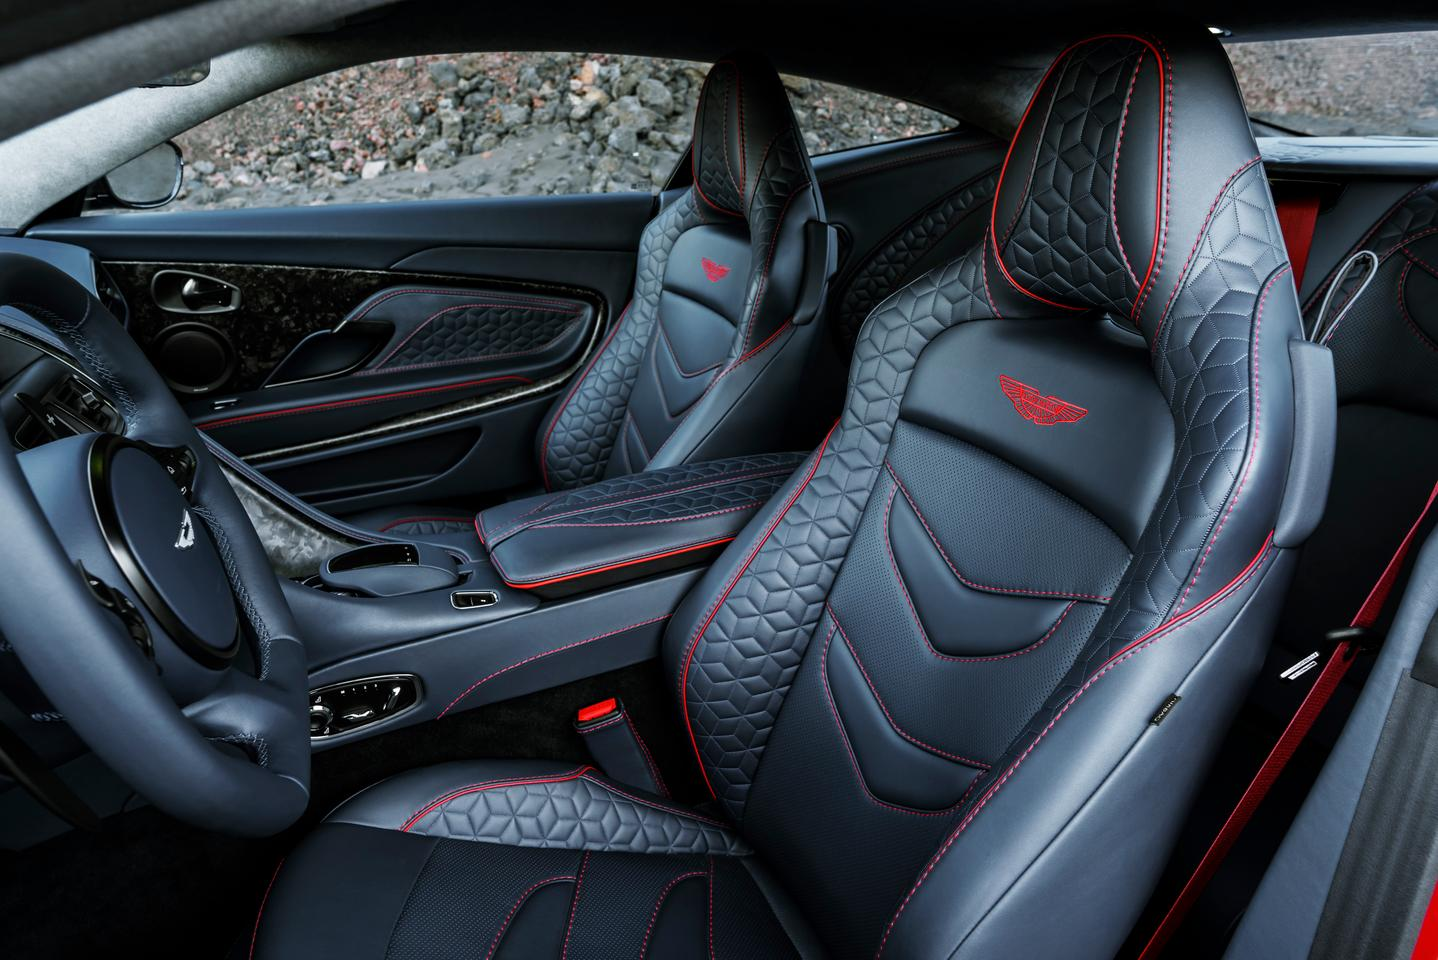 The DBS interior uses reams of Bridge of Weir leather, from hairy Highland cows